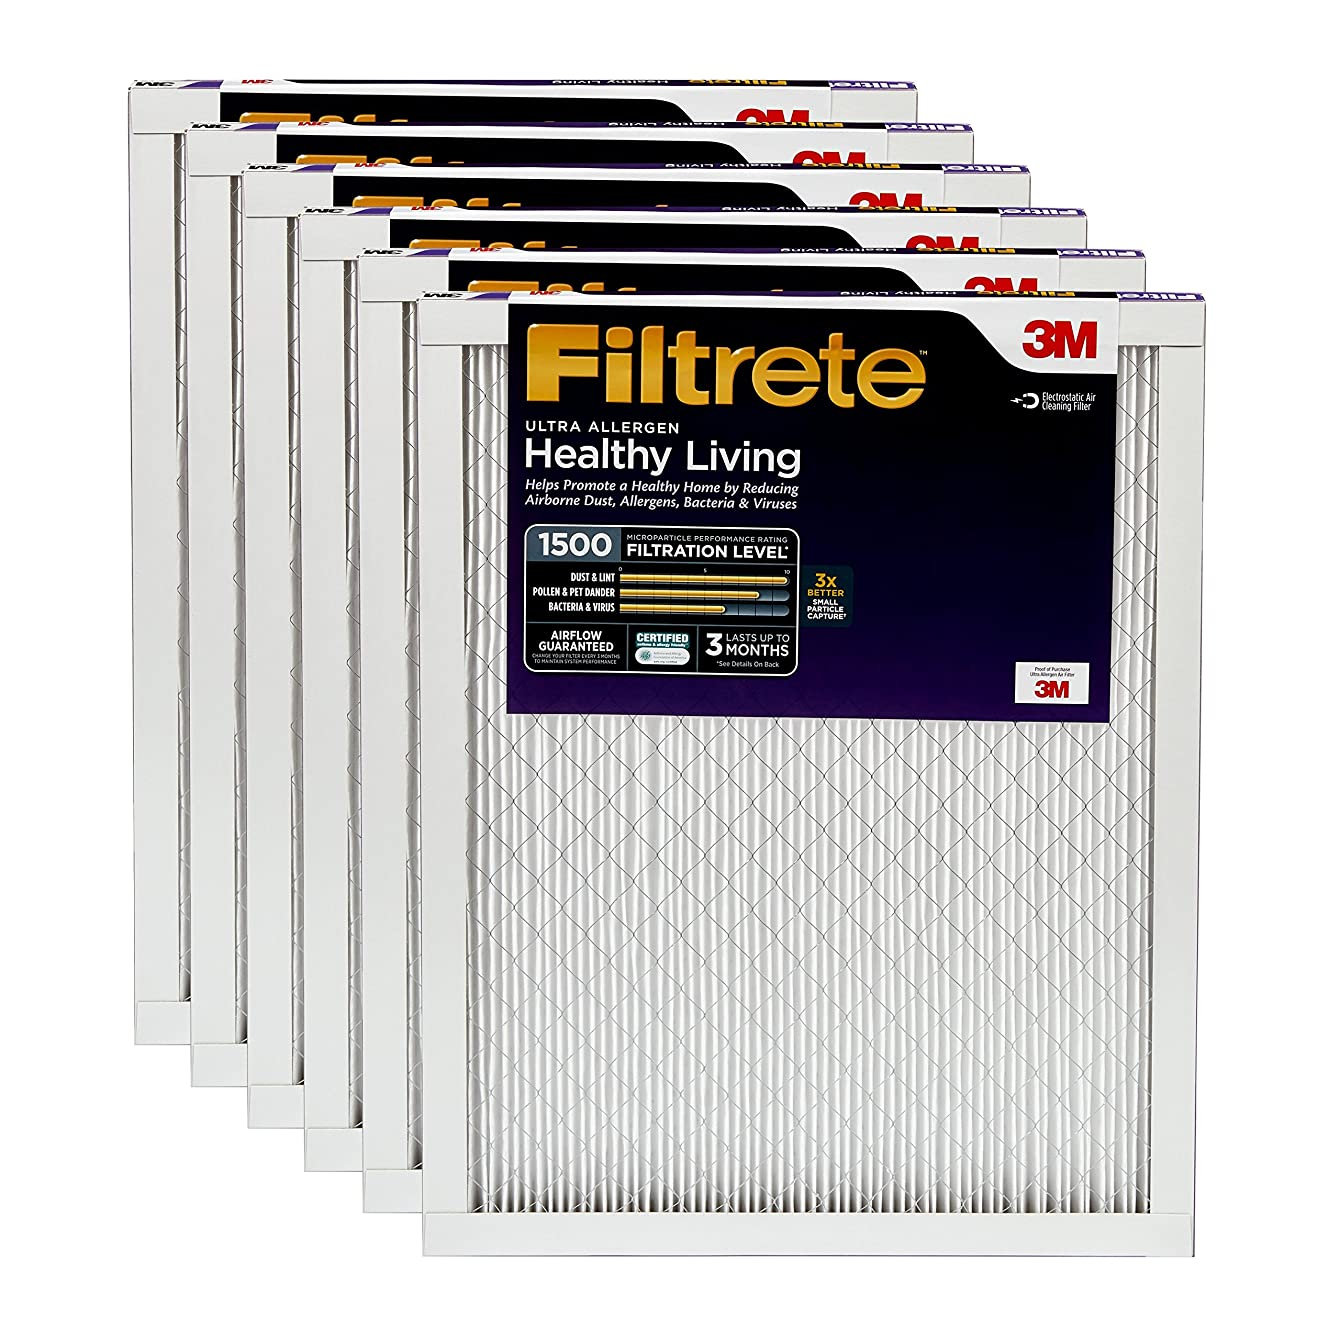 Filtrete 24x24x1, AC Furnace Air Filter, MPR 1500, Healthy Living Ultra Allergen, 6-Pack